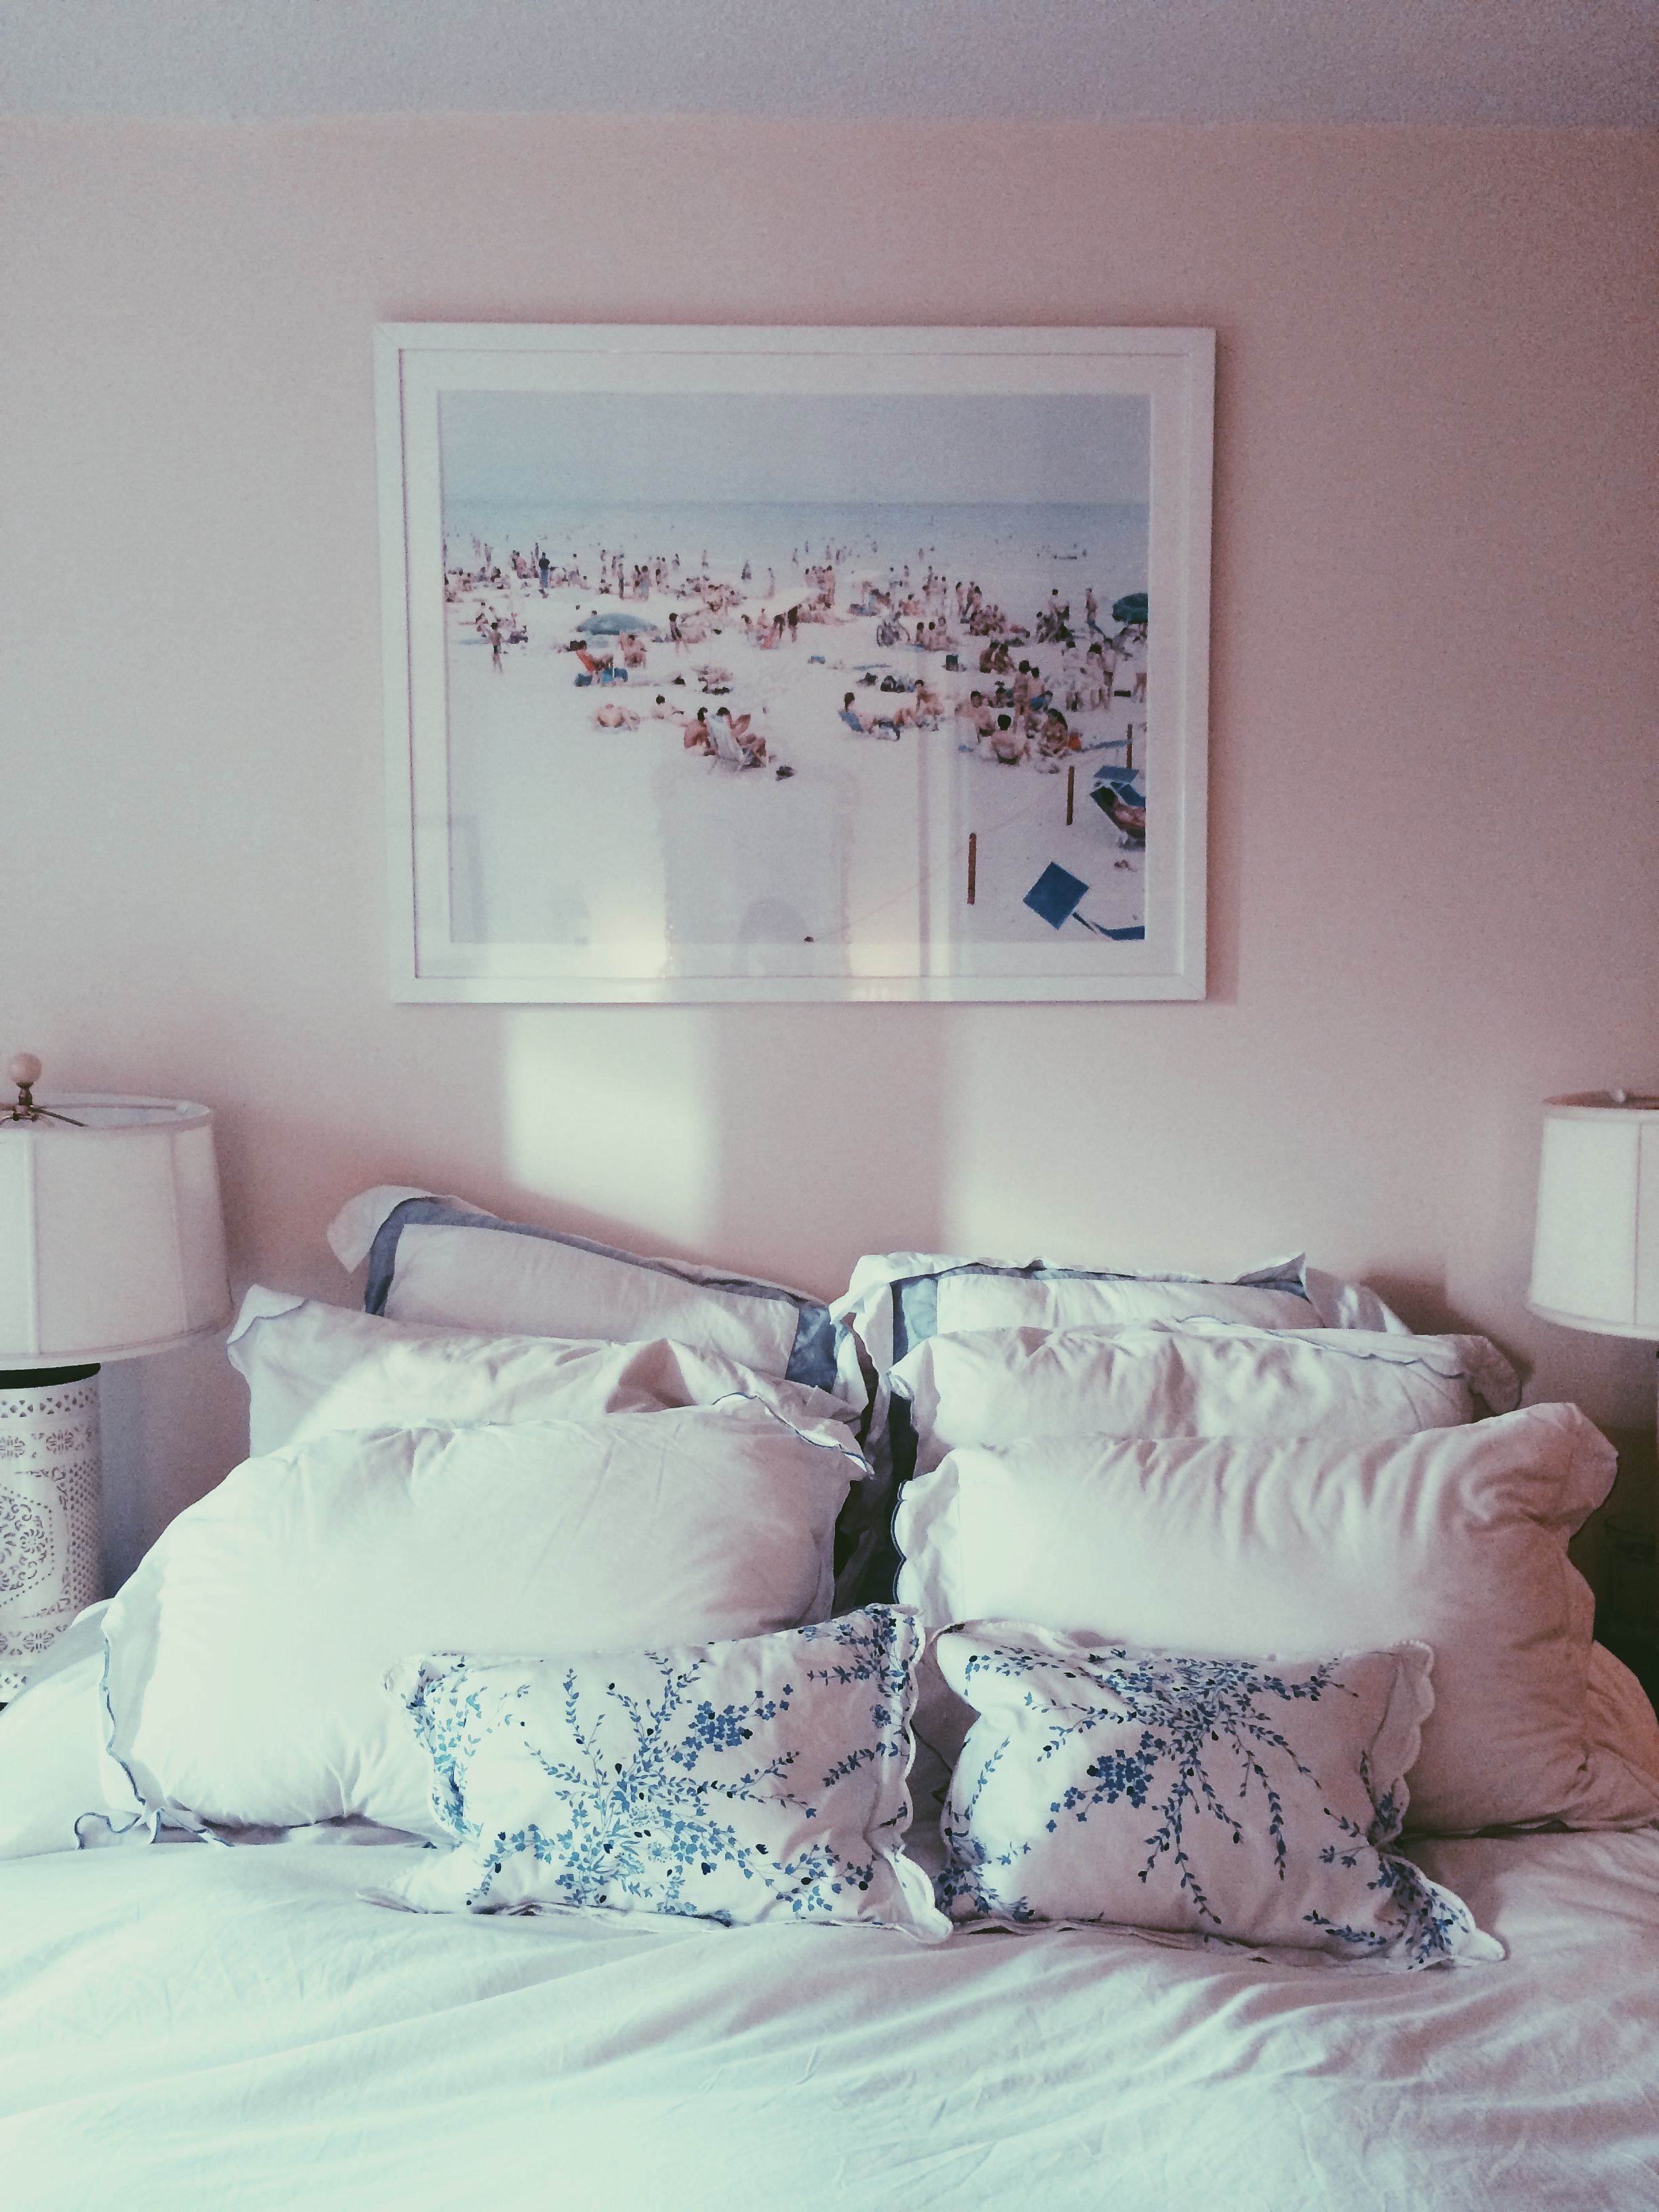 New York City // Linens by D. Porthault, Schweitzer, and Frette.